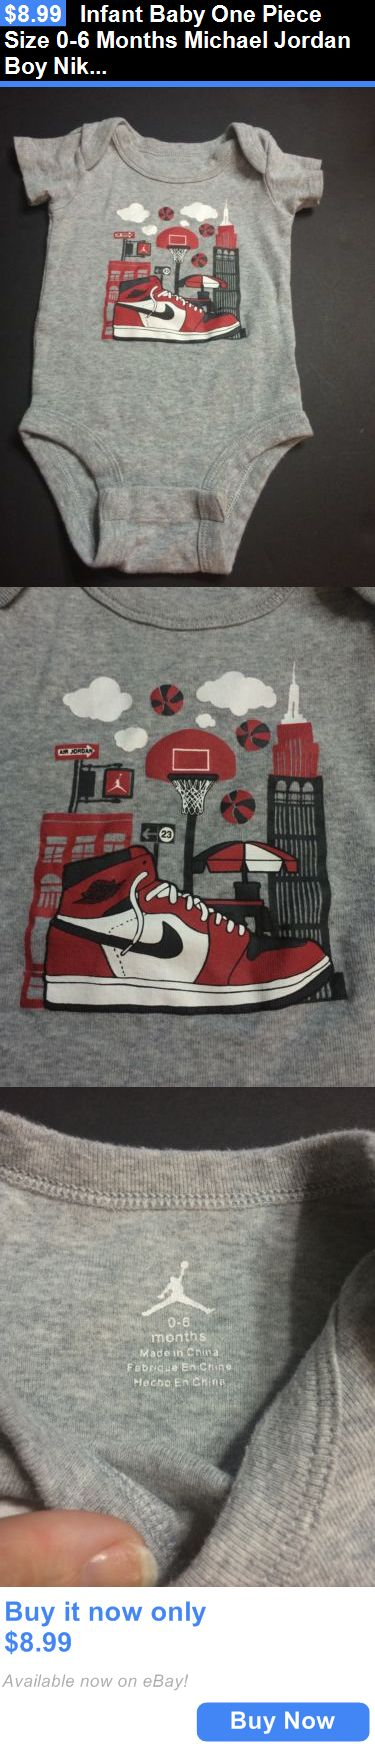 Michael Jordan Baby Clothing: Infant Baby One Piece Size 0-6 Months Michael Jordan Boy Nike Shirt Grey Red BUY IT NOW ONLY: $8.99